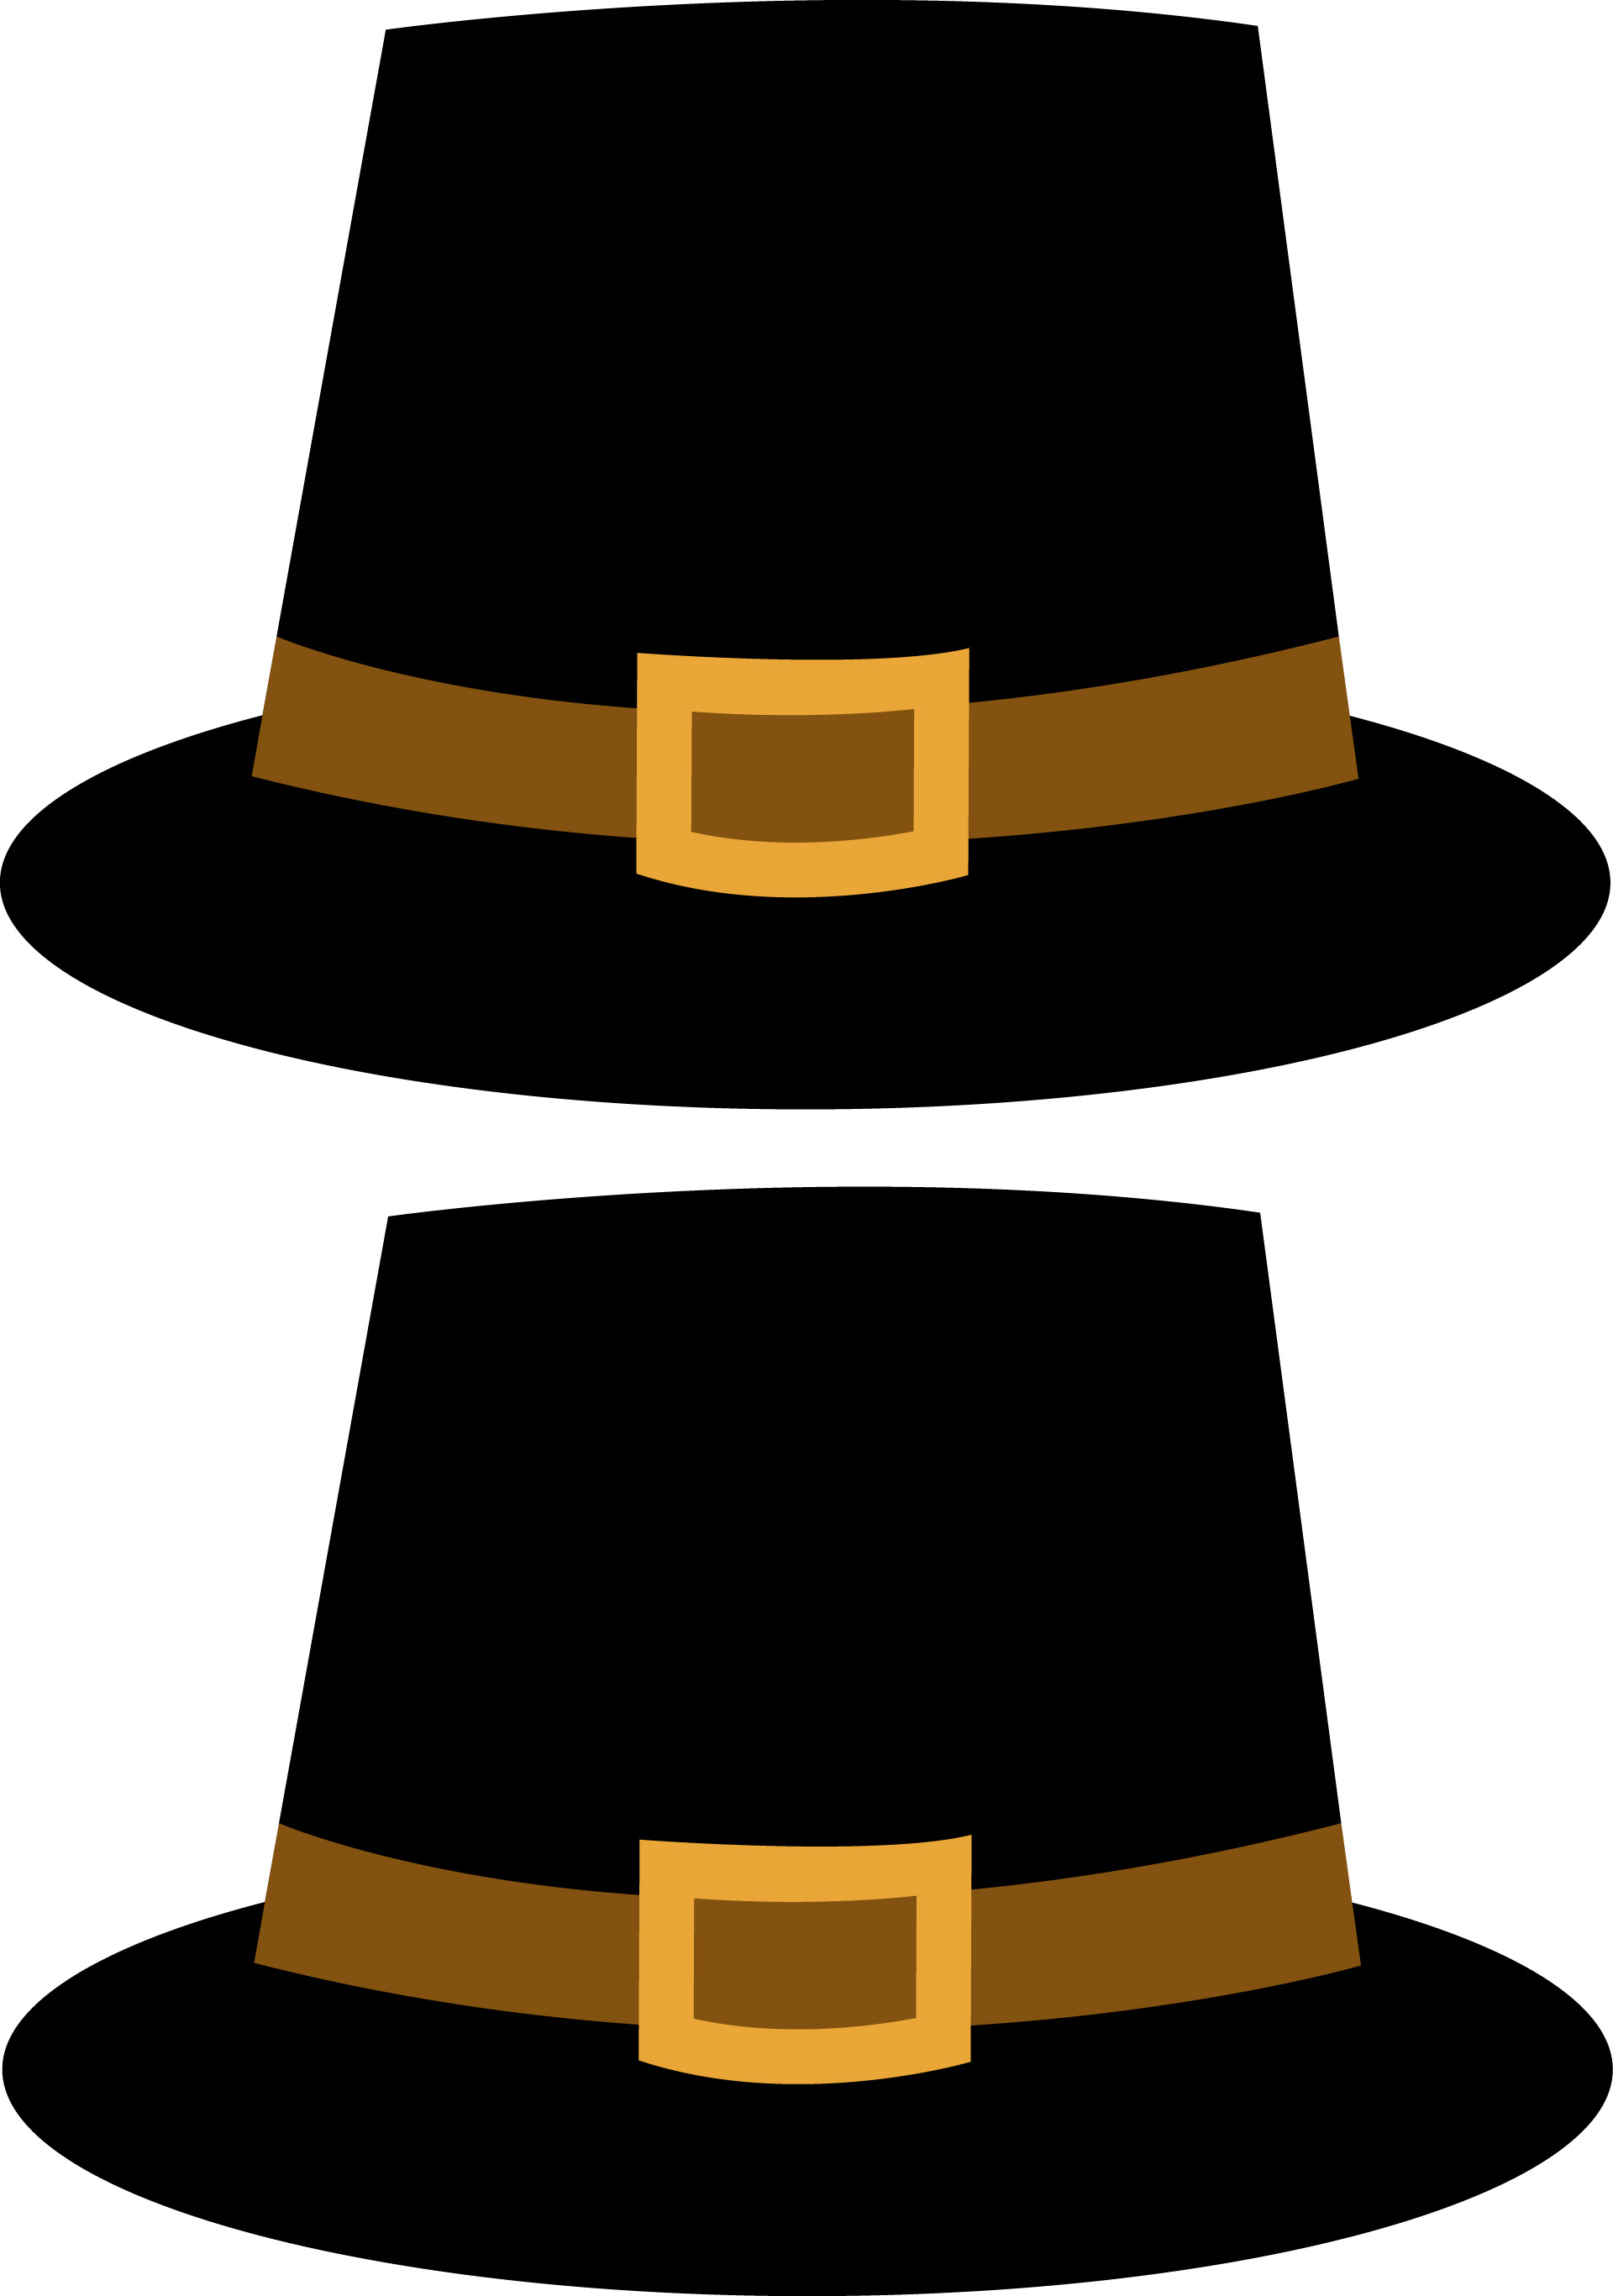 Pilgrim Hat Clipart - Cliparts.co